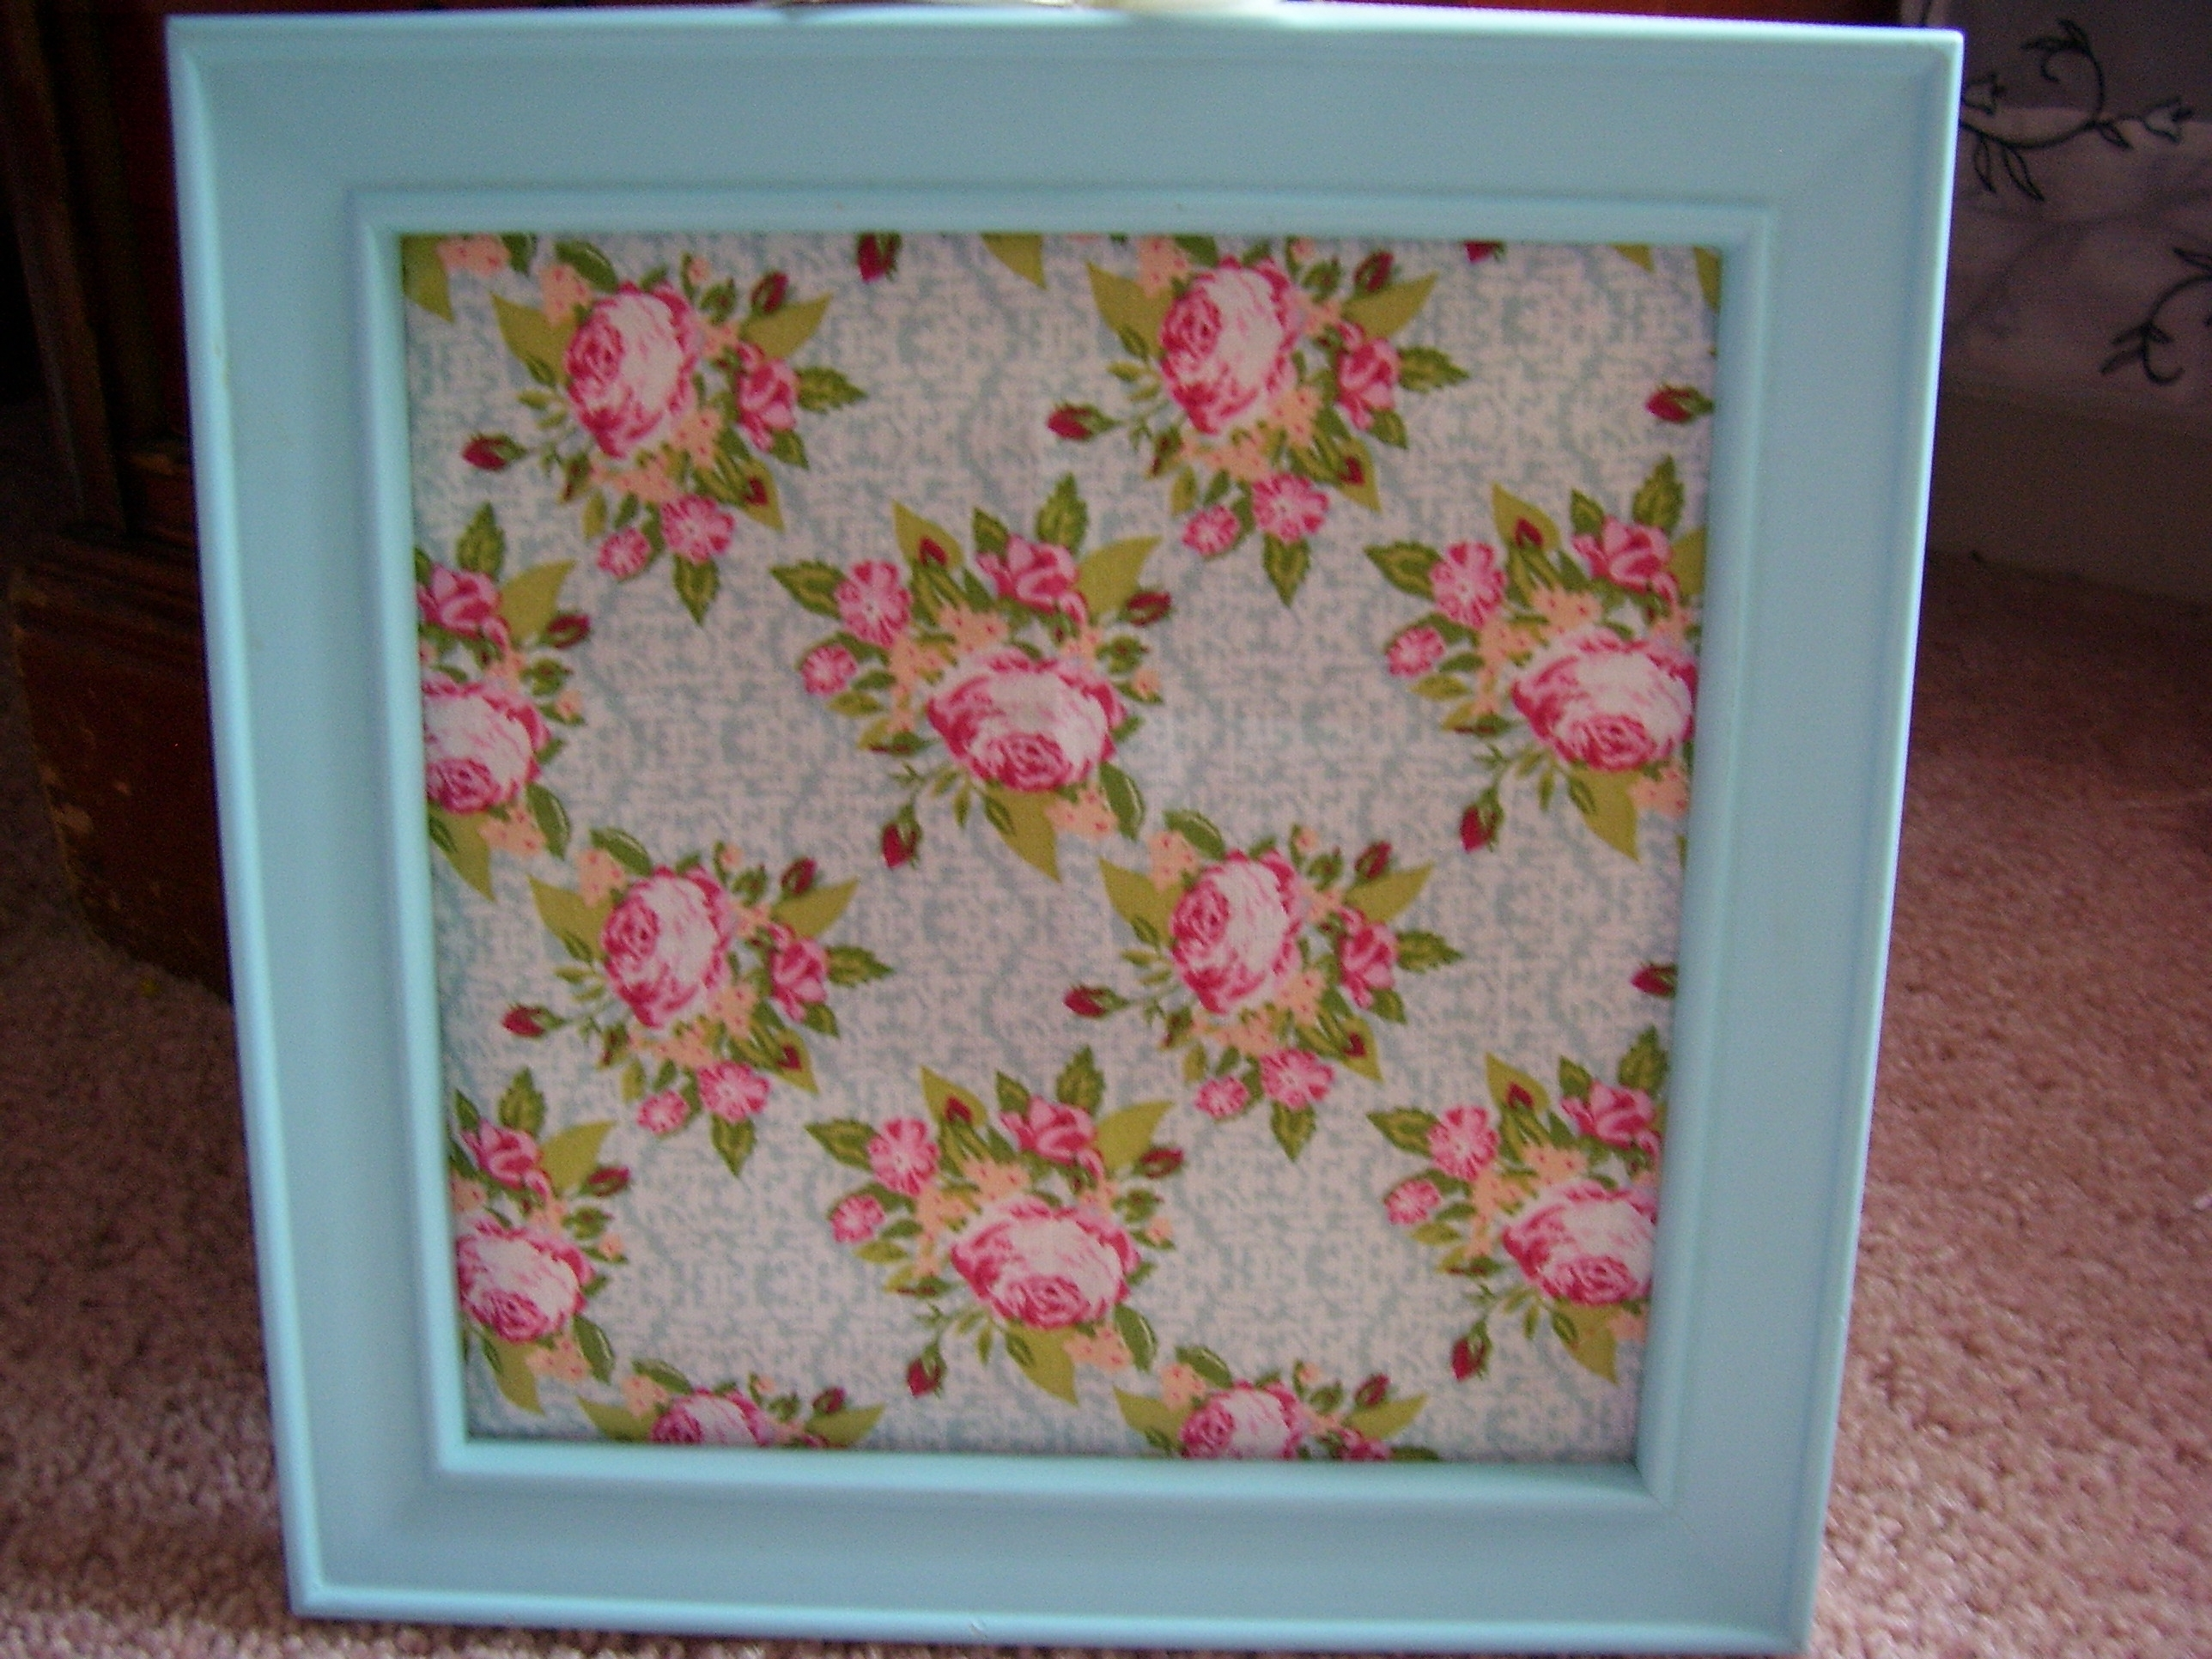 Well Known Floral Fabric Wall Art Intended For Spring & Easter Framed Fabric Wall Art – Quiver Full Of Blessings (View 15 of 15)